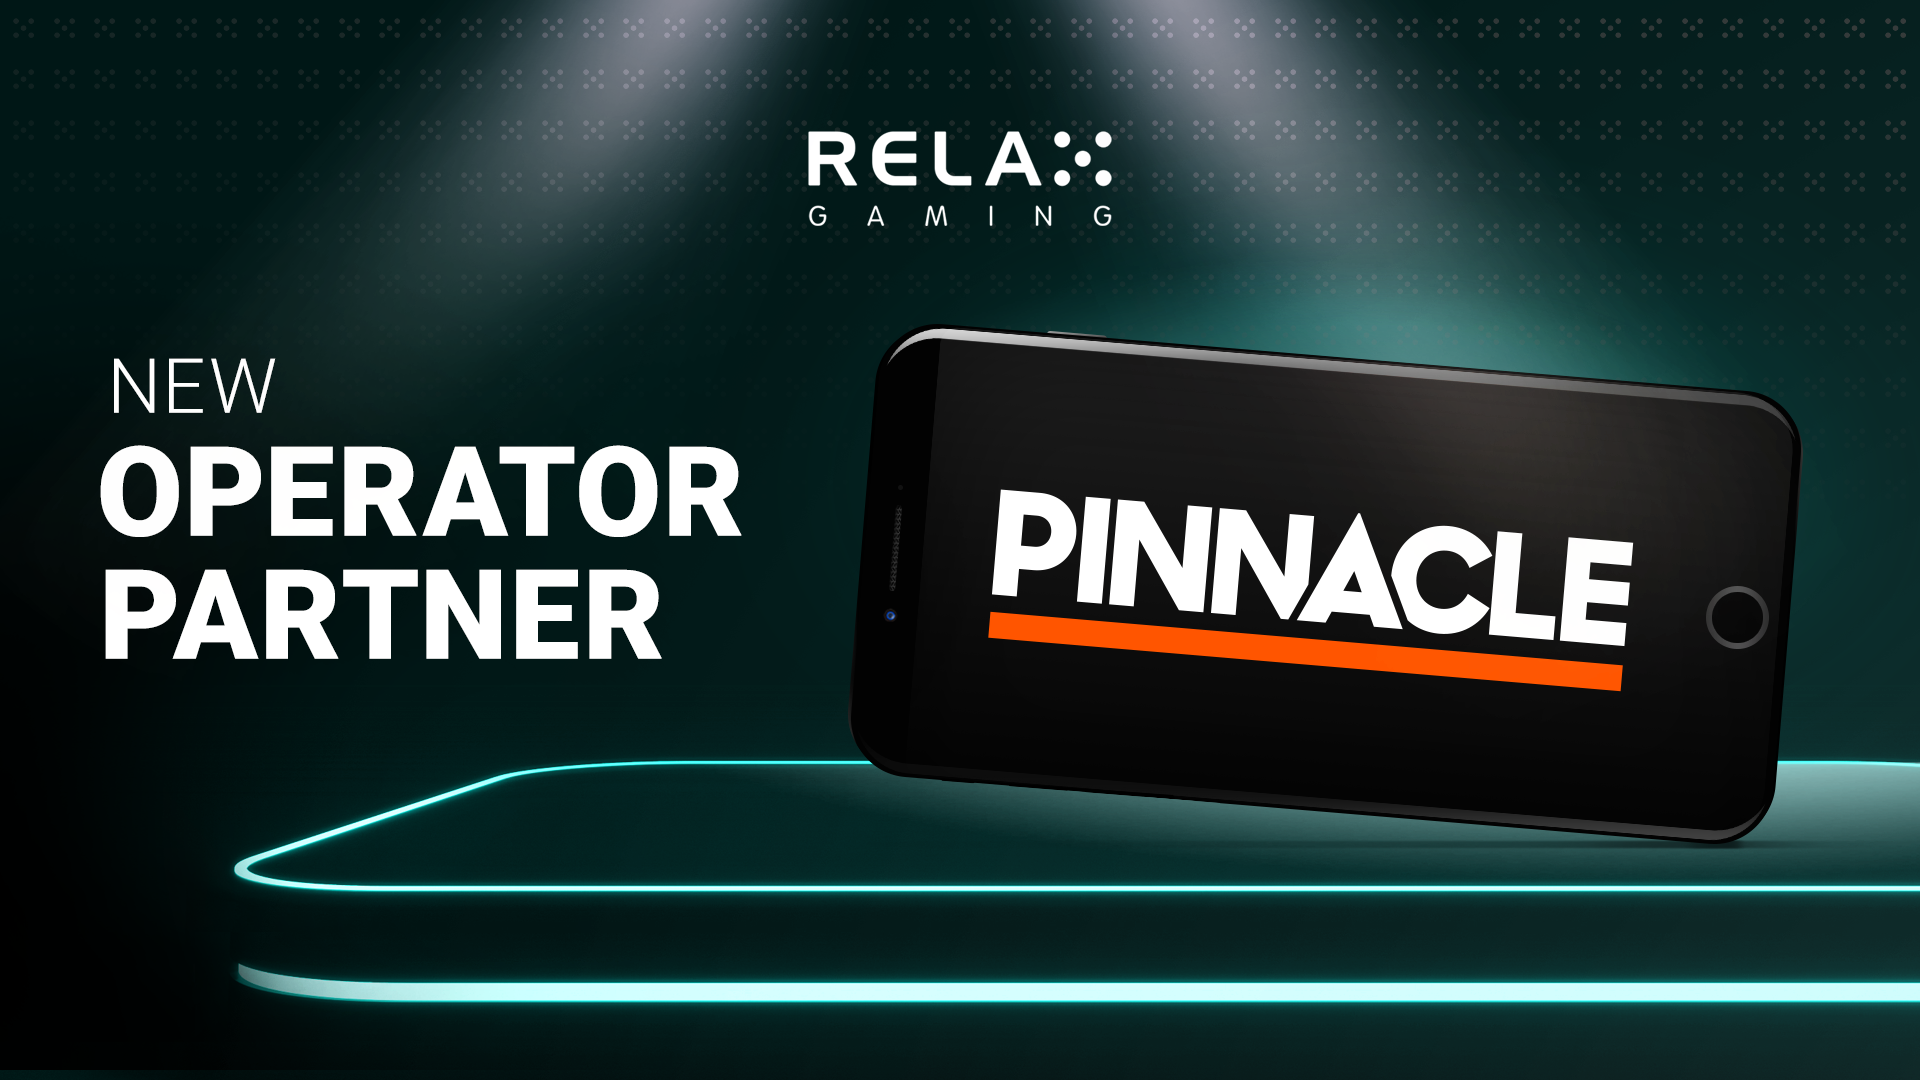 Relax Gaming expands distribution with Pinnacle partnership